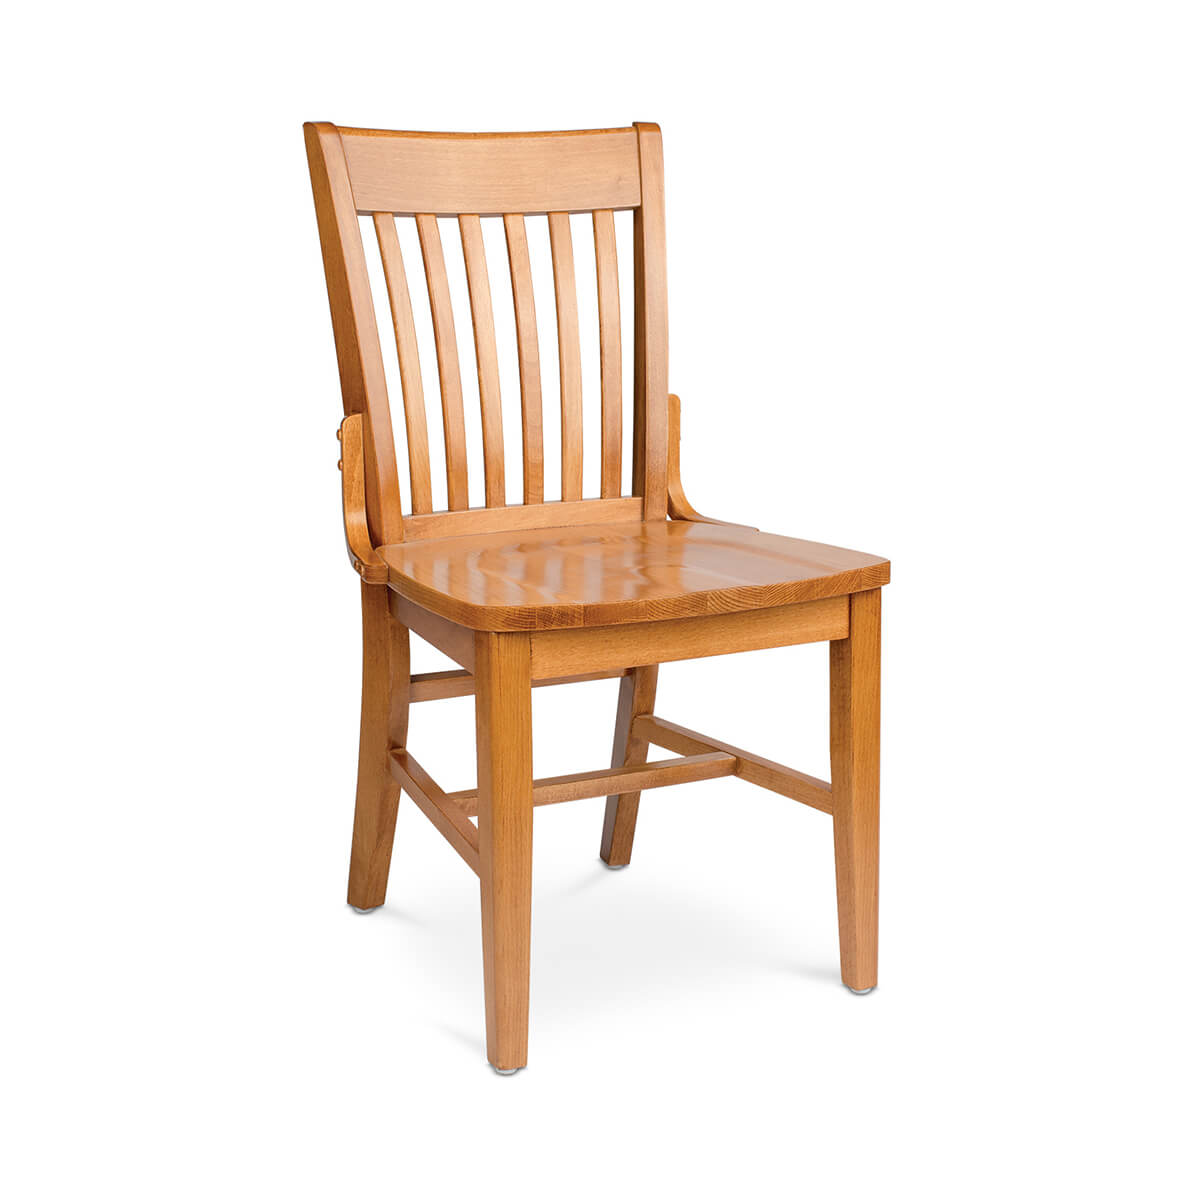 _0000s_0010_Henry Chair_1920